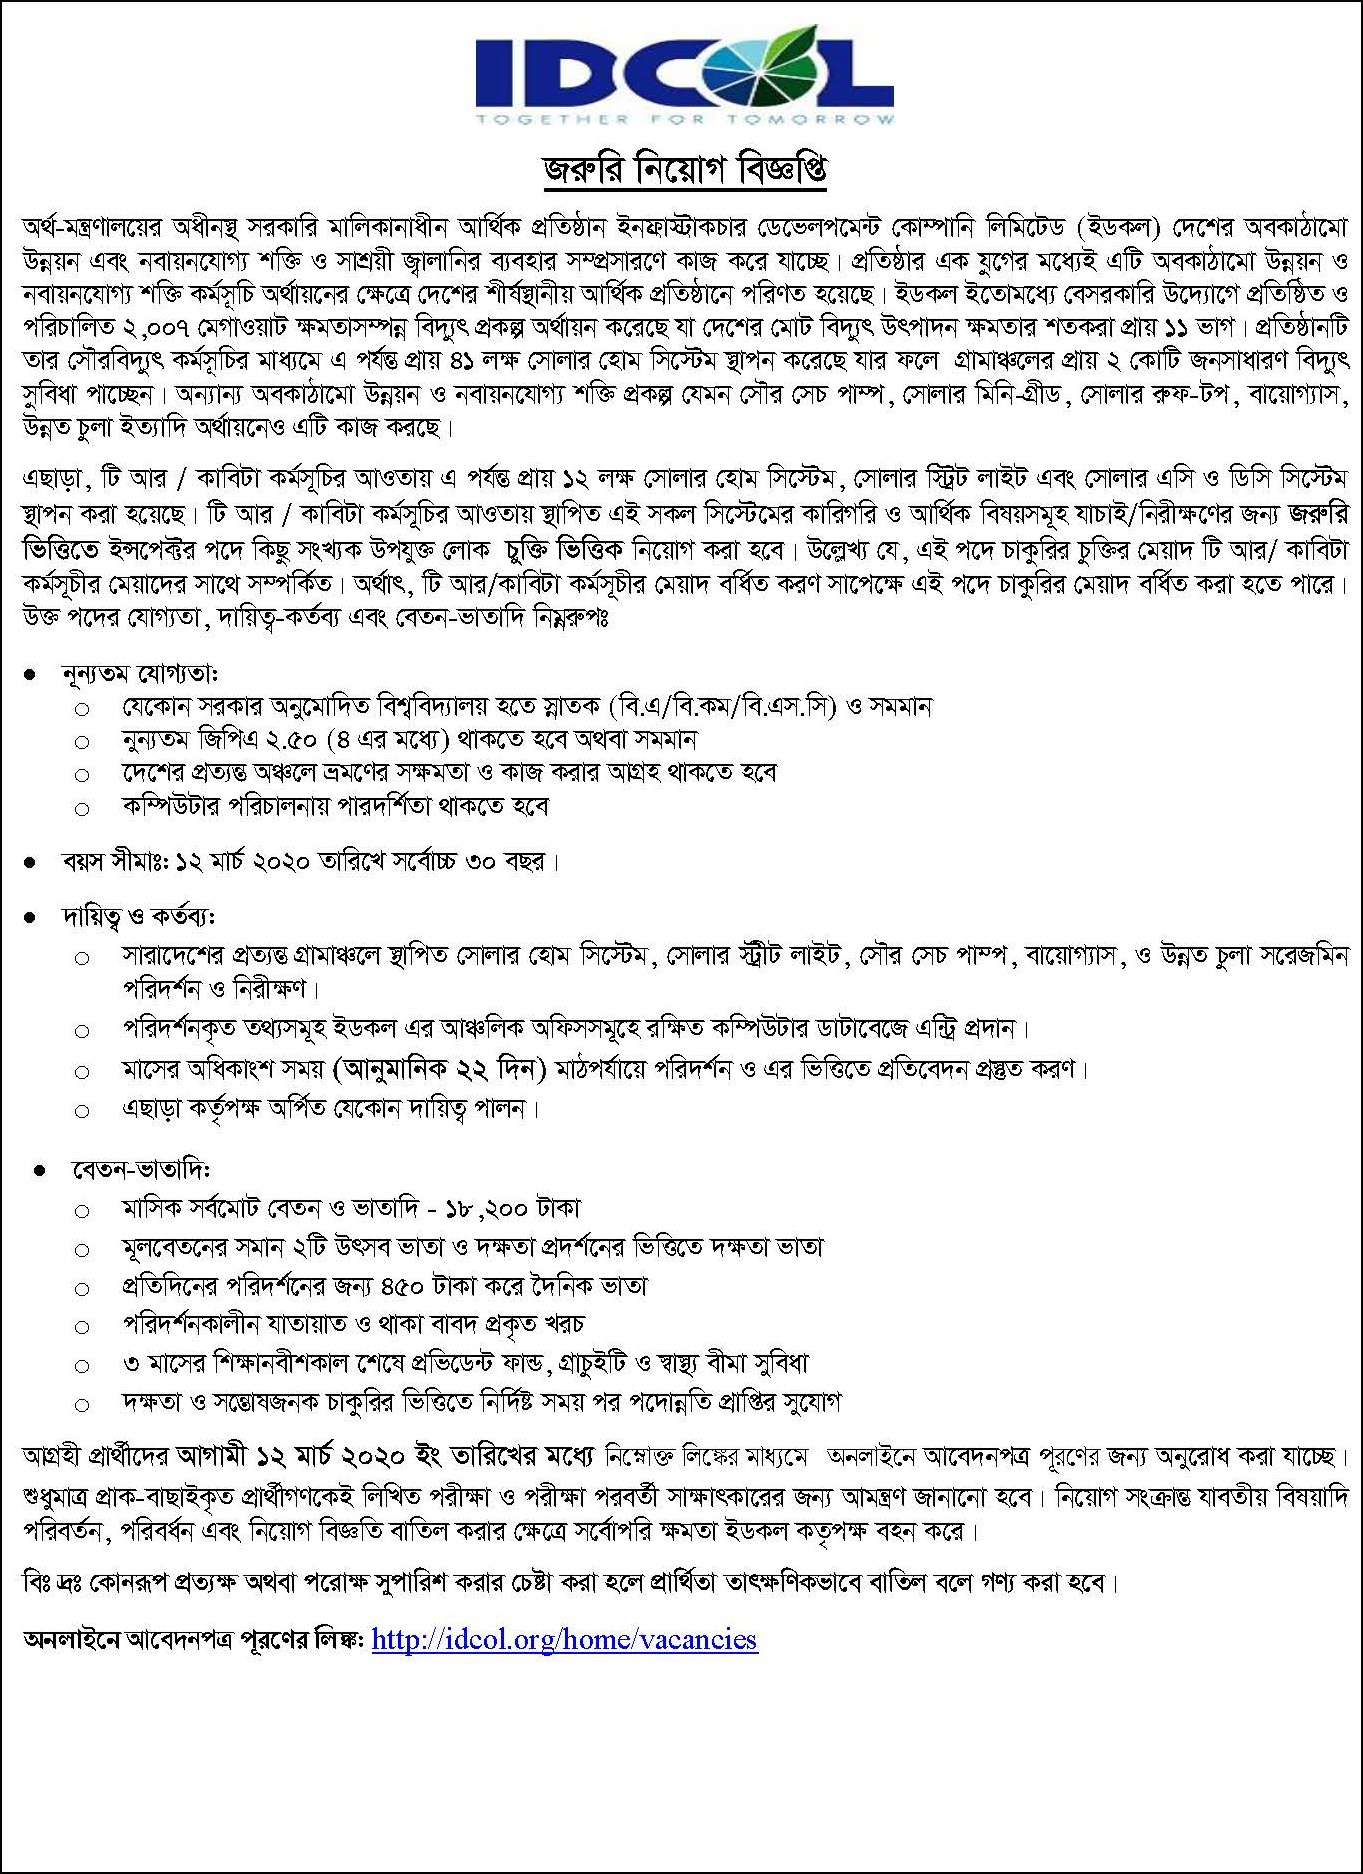 Infrastructure Development Company Limited Job Circular 2020